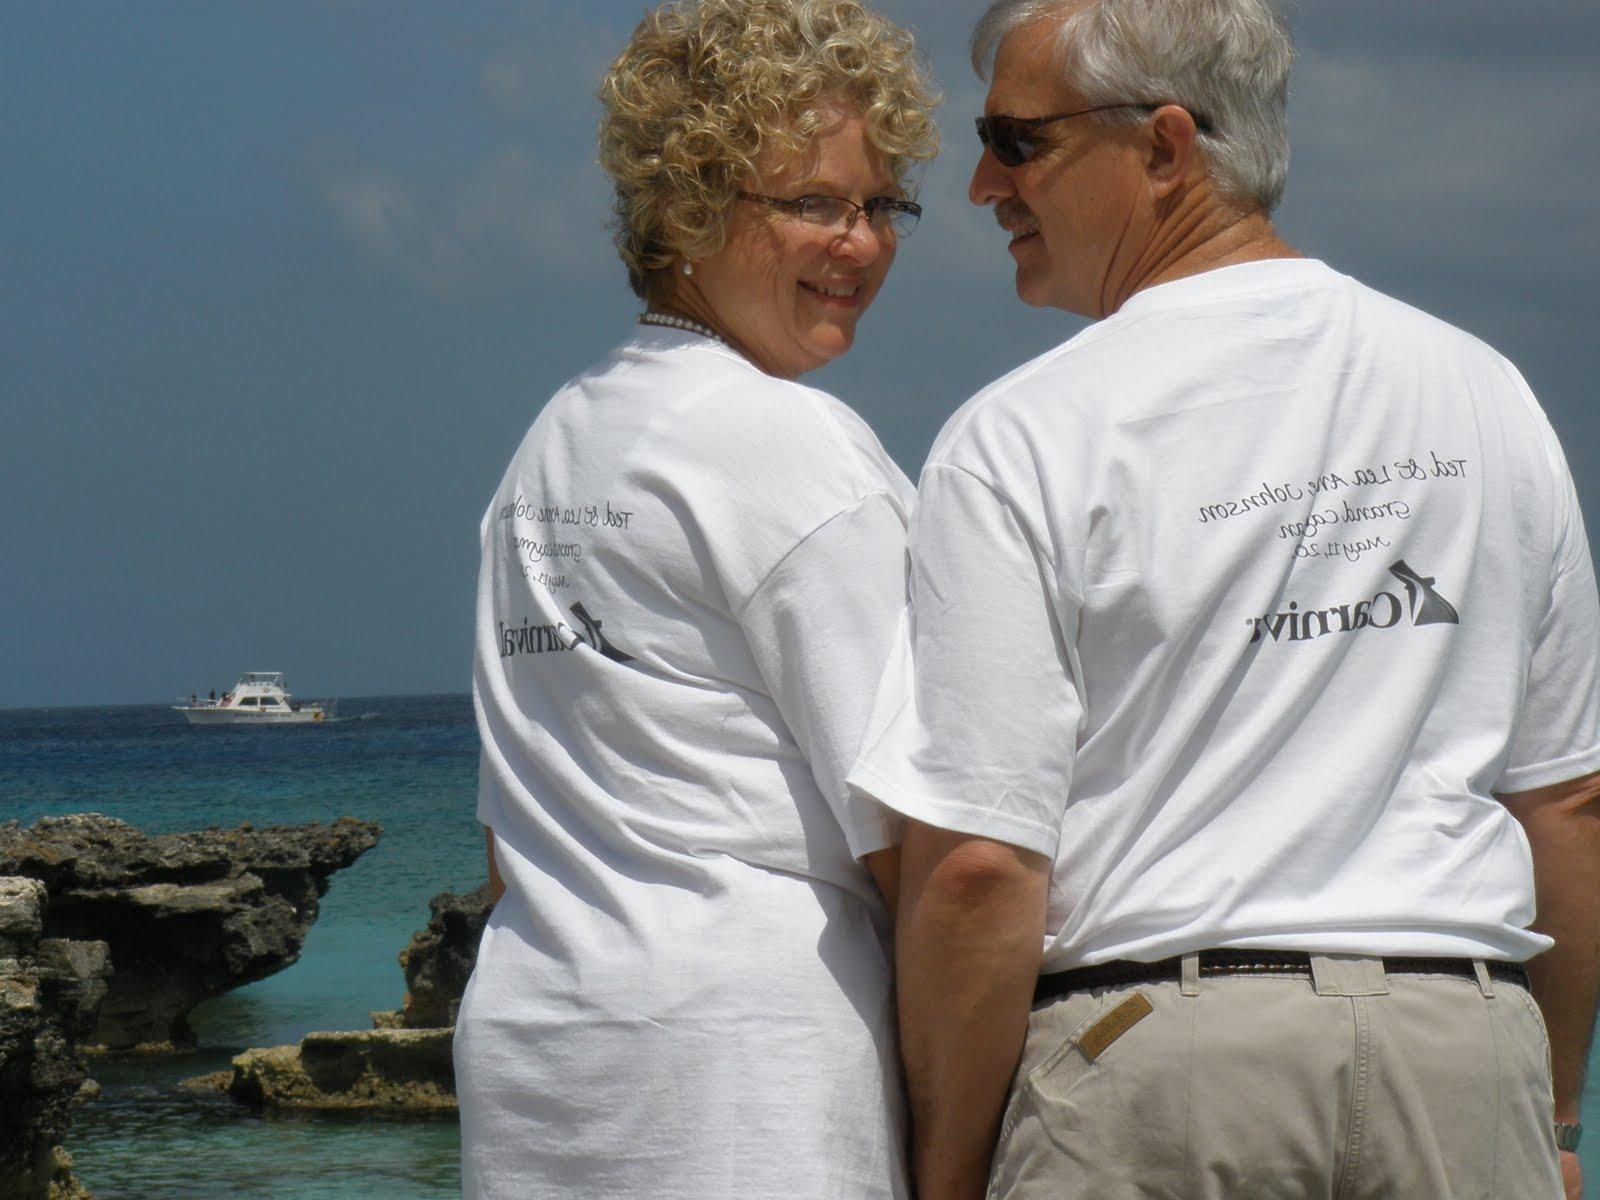 The backs of the shirts had their names, date of marriage, Cayman Islands